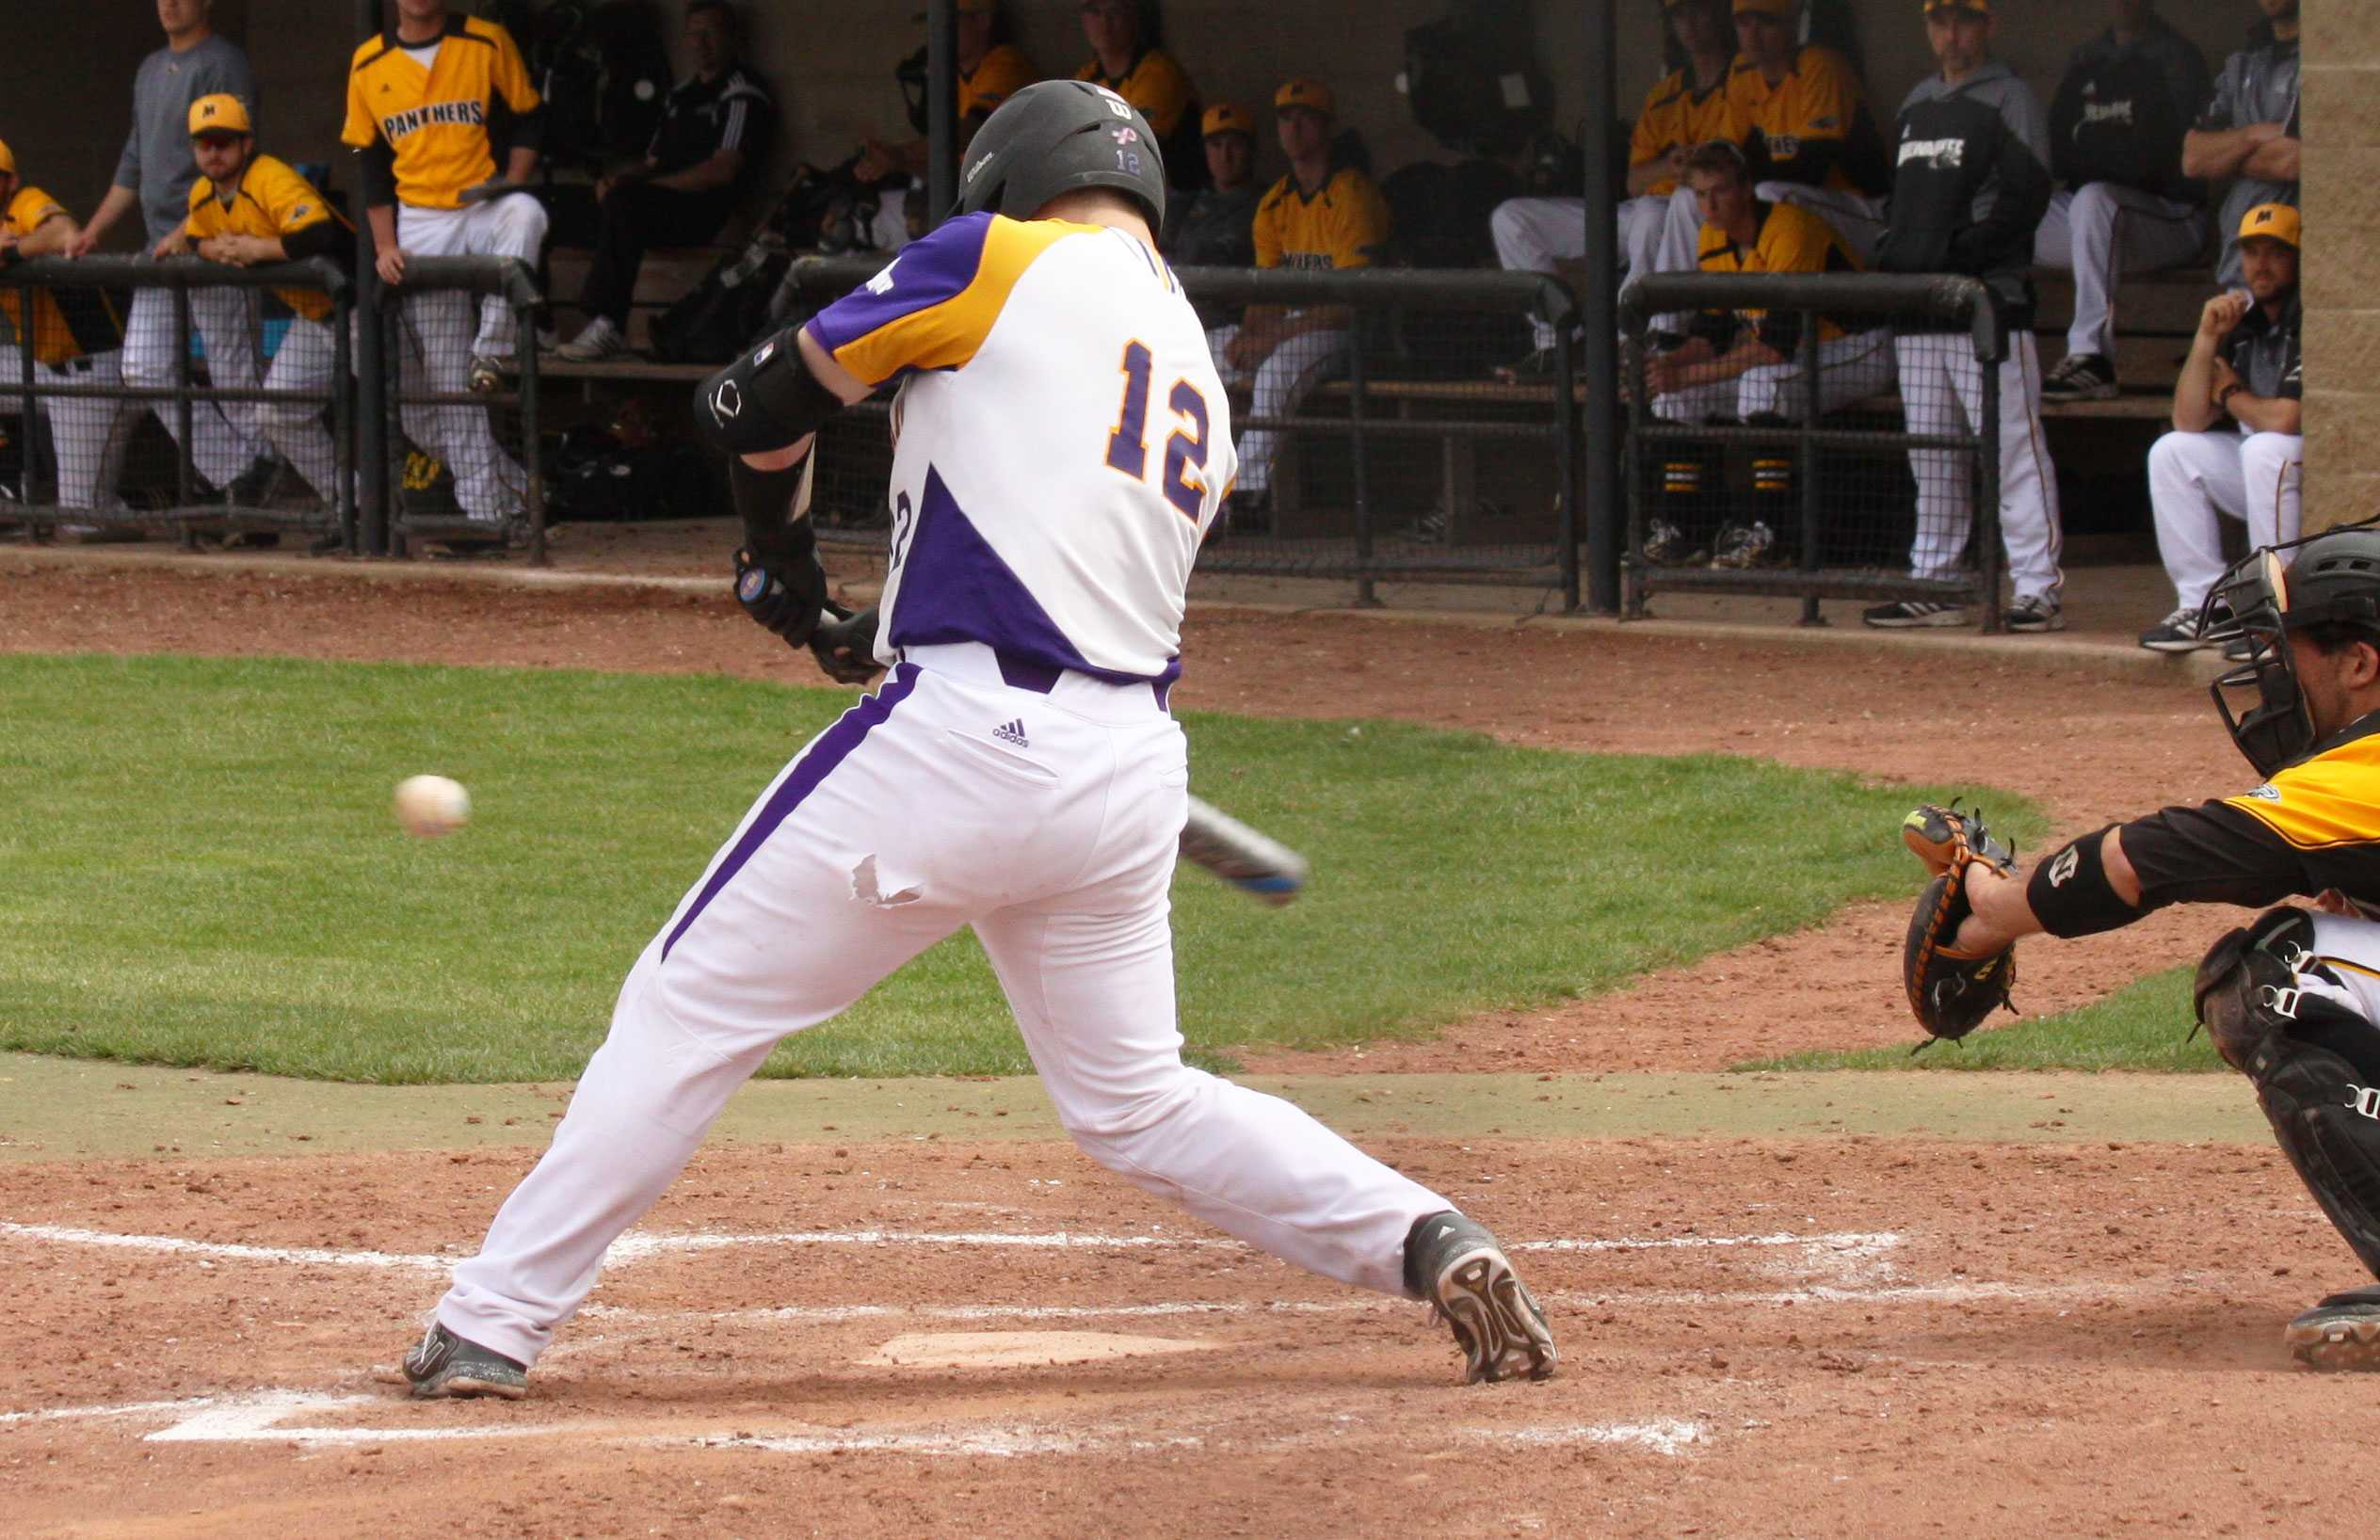 After choosing baseball over hockey, catcher Adam McGinnis has made the most of his time at Western.